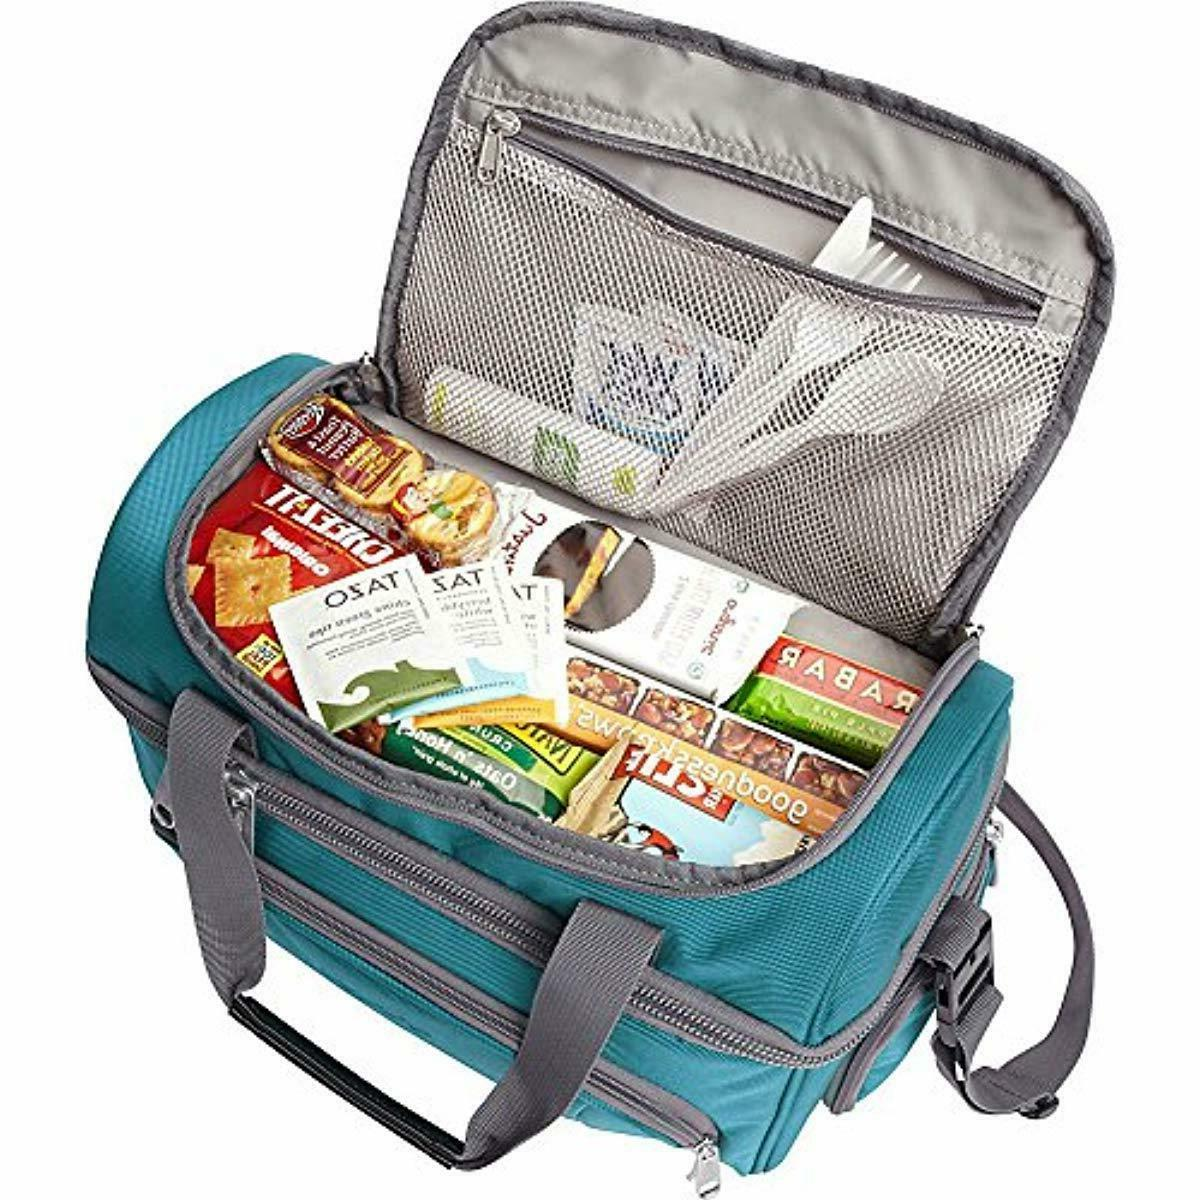 Ebags Lunch Work Travel Picnic Portable Luggage